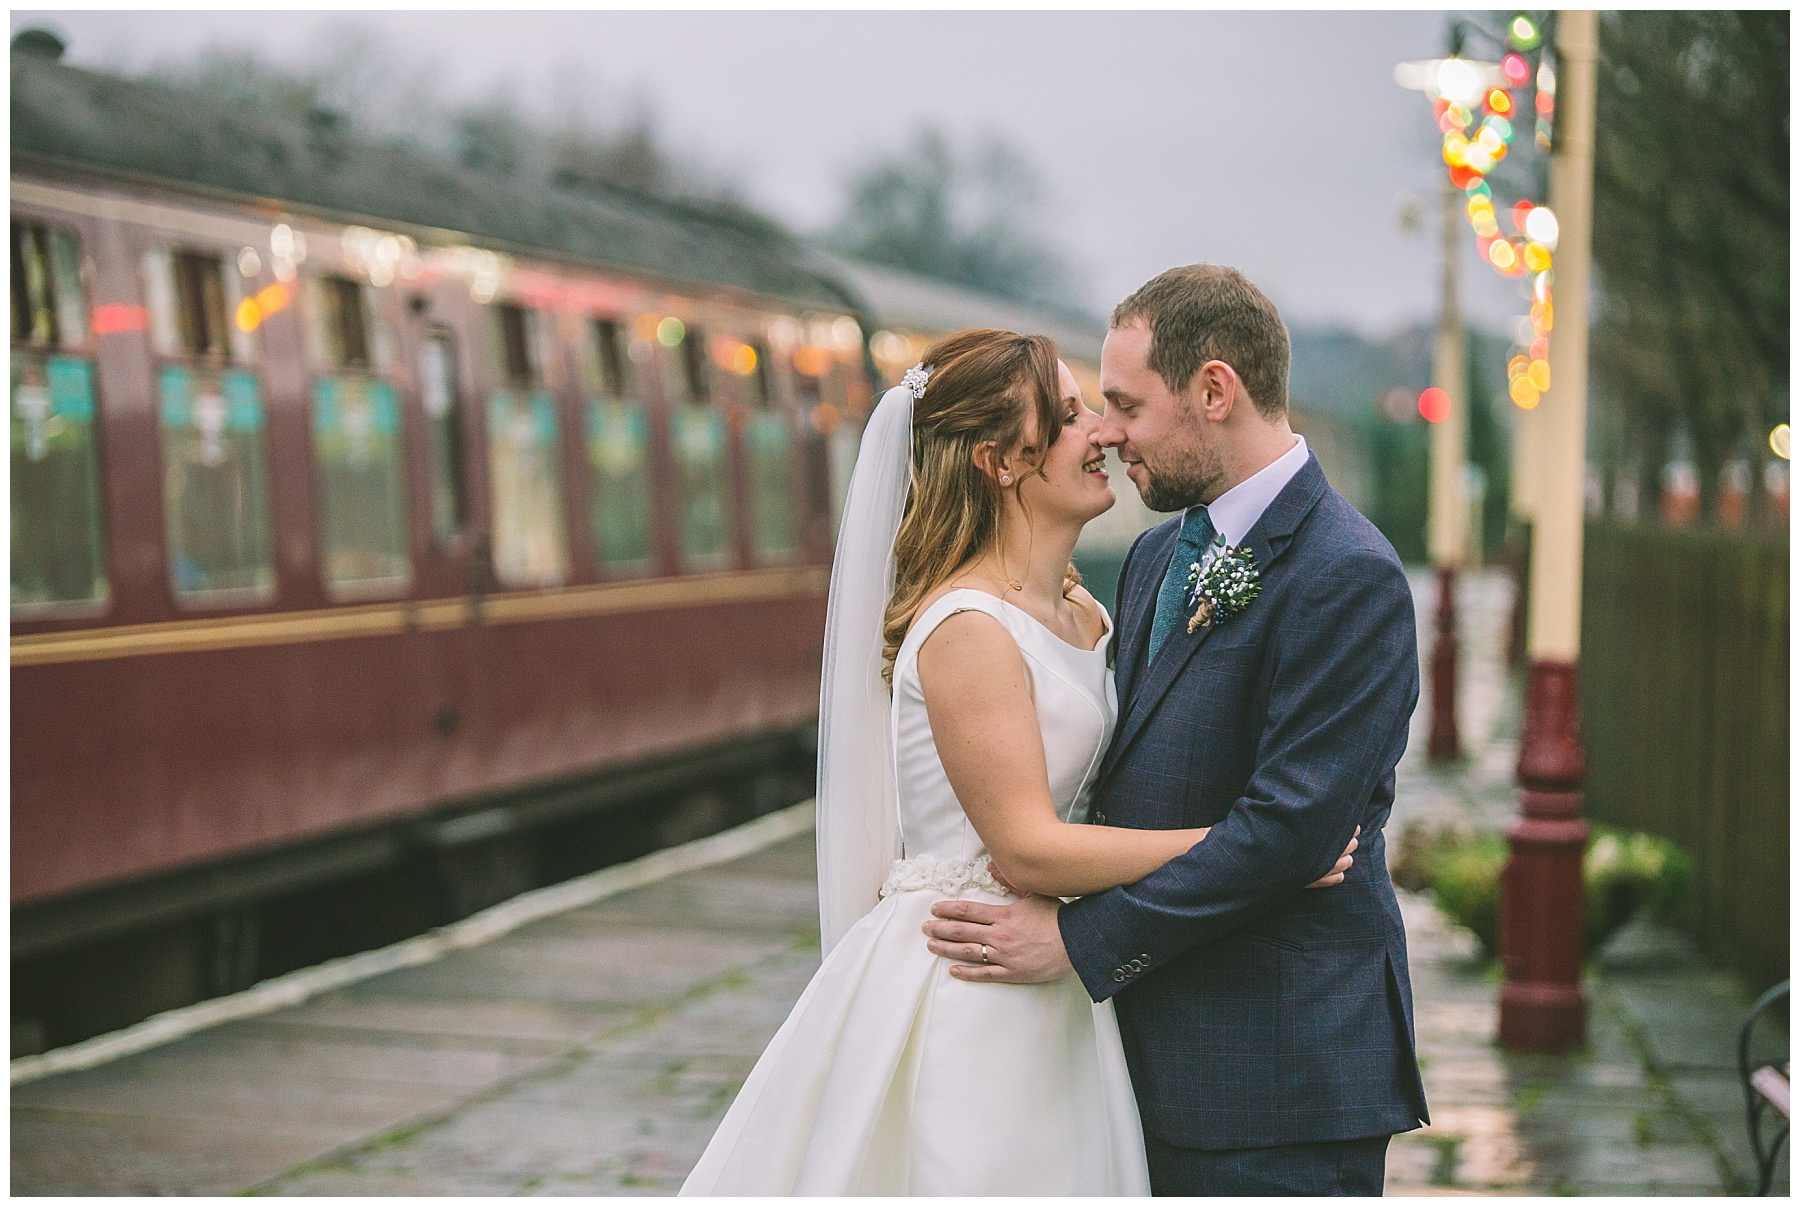 Wedding couple stand on steam rail platform